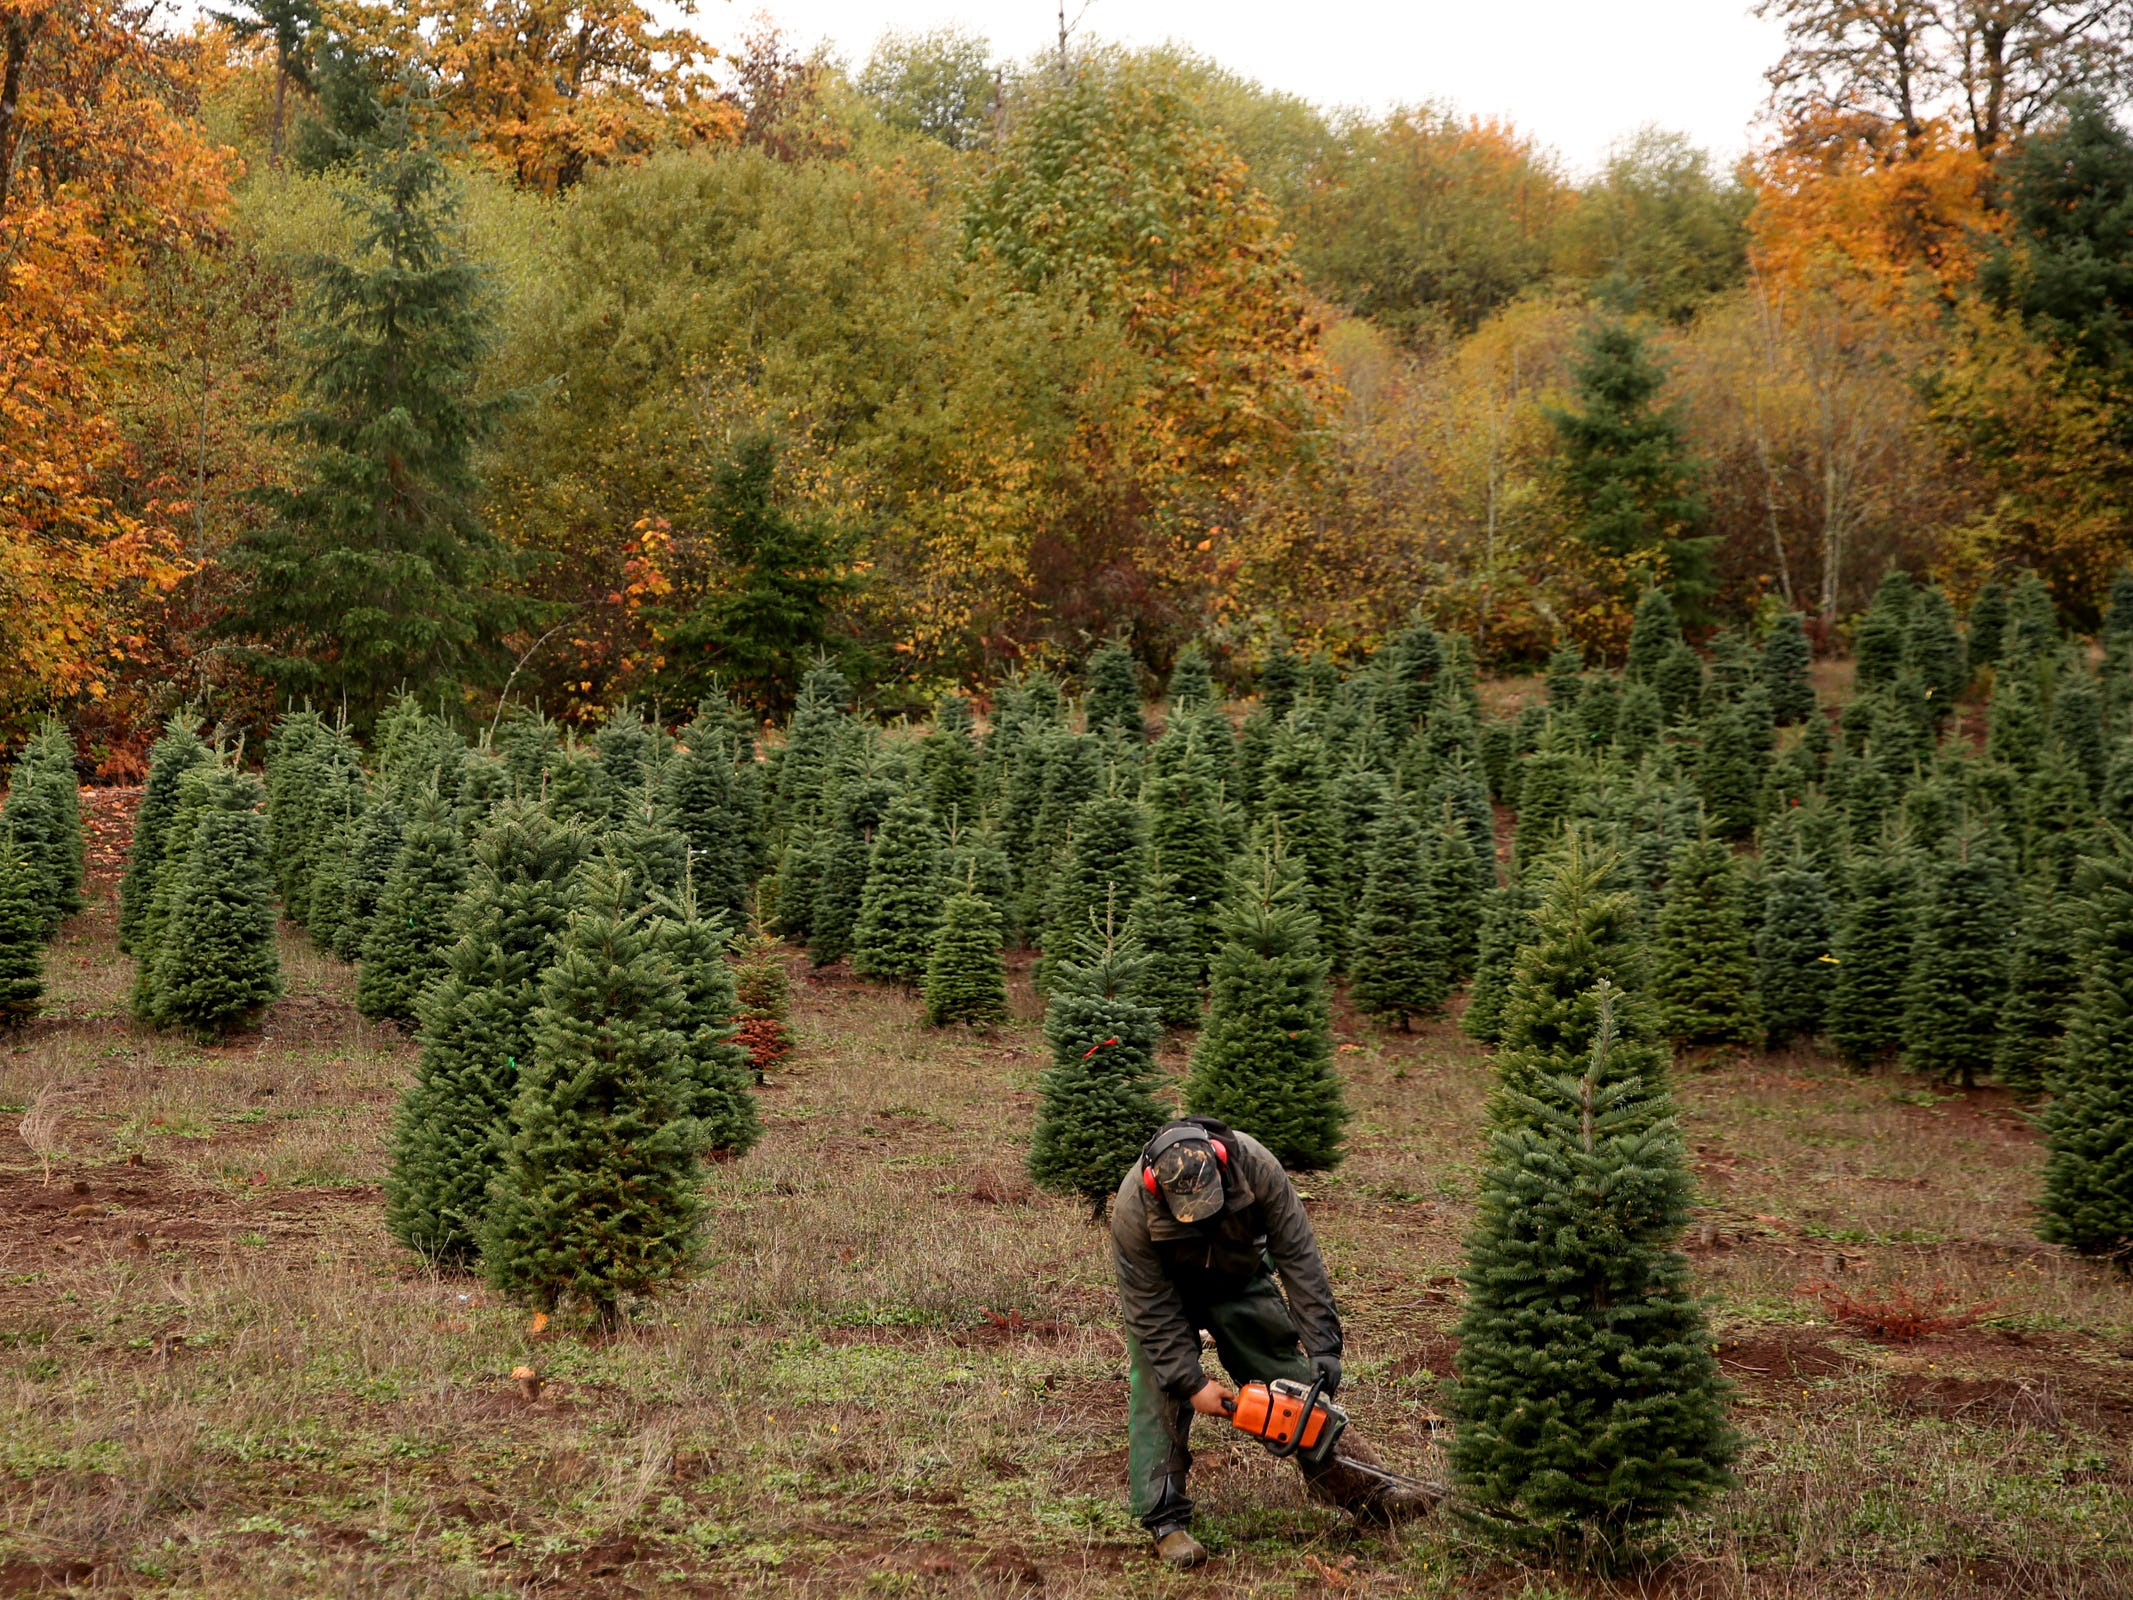 Alejandro Rios, of Silverton, harvests a Christmas at Hupp Farms near Silverton on Monday, Nov. 5, 2018.